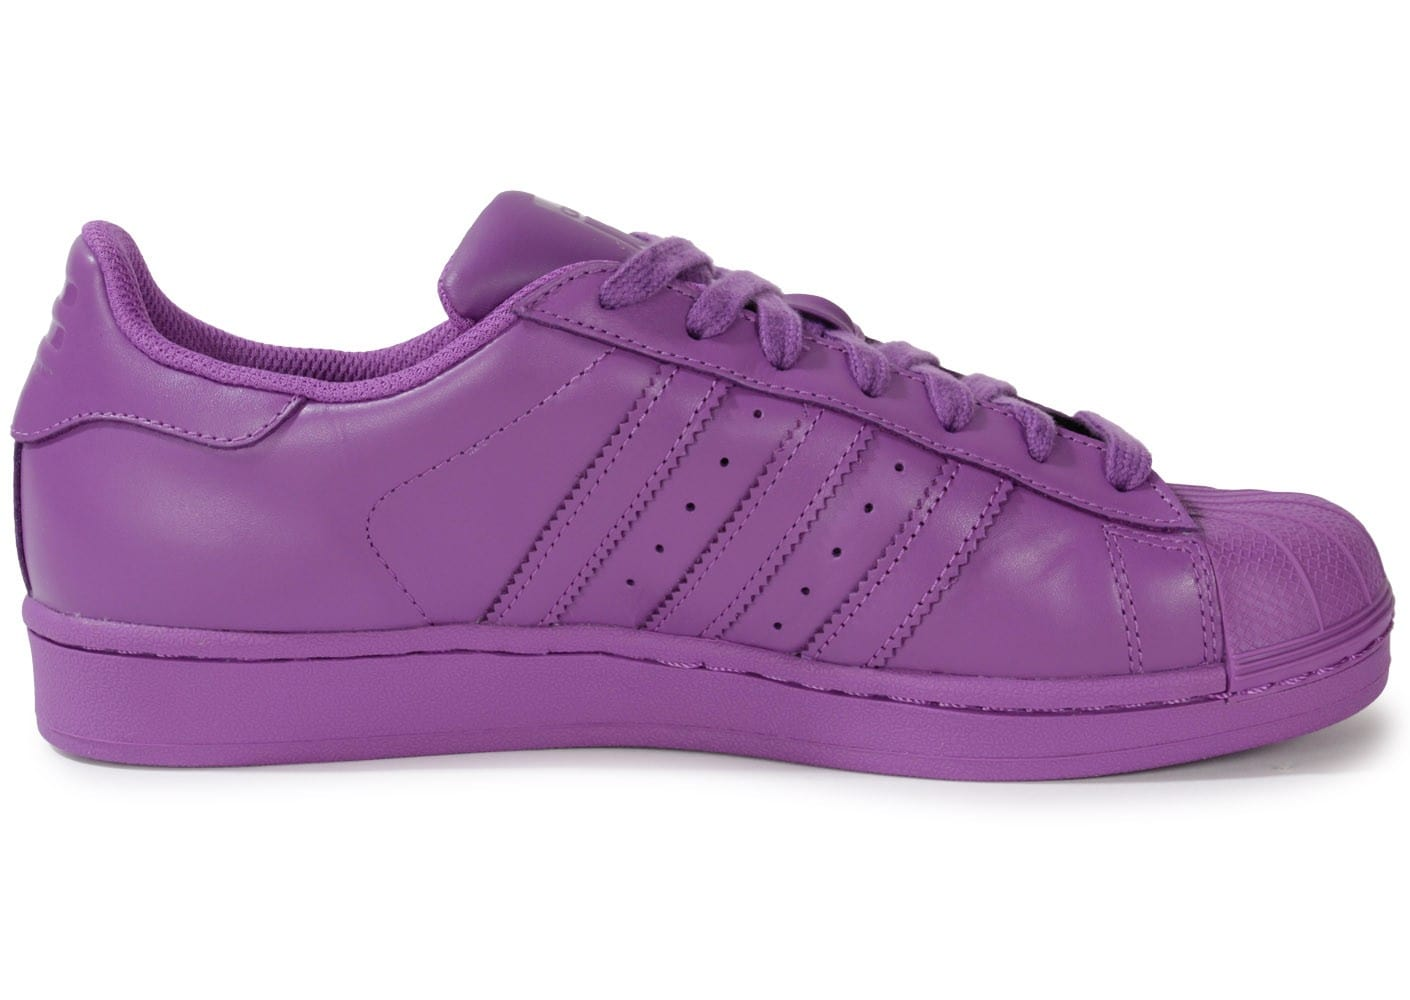 Chaussures adidas SUPERSTAR SUPERCOLOR RAY PURPLE vue dessous